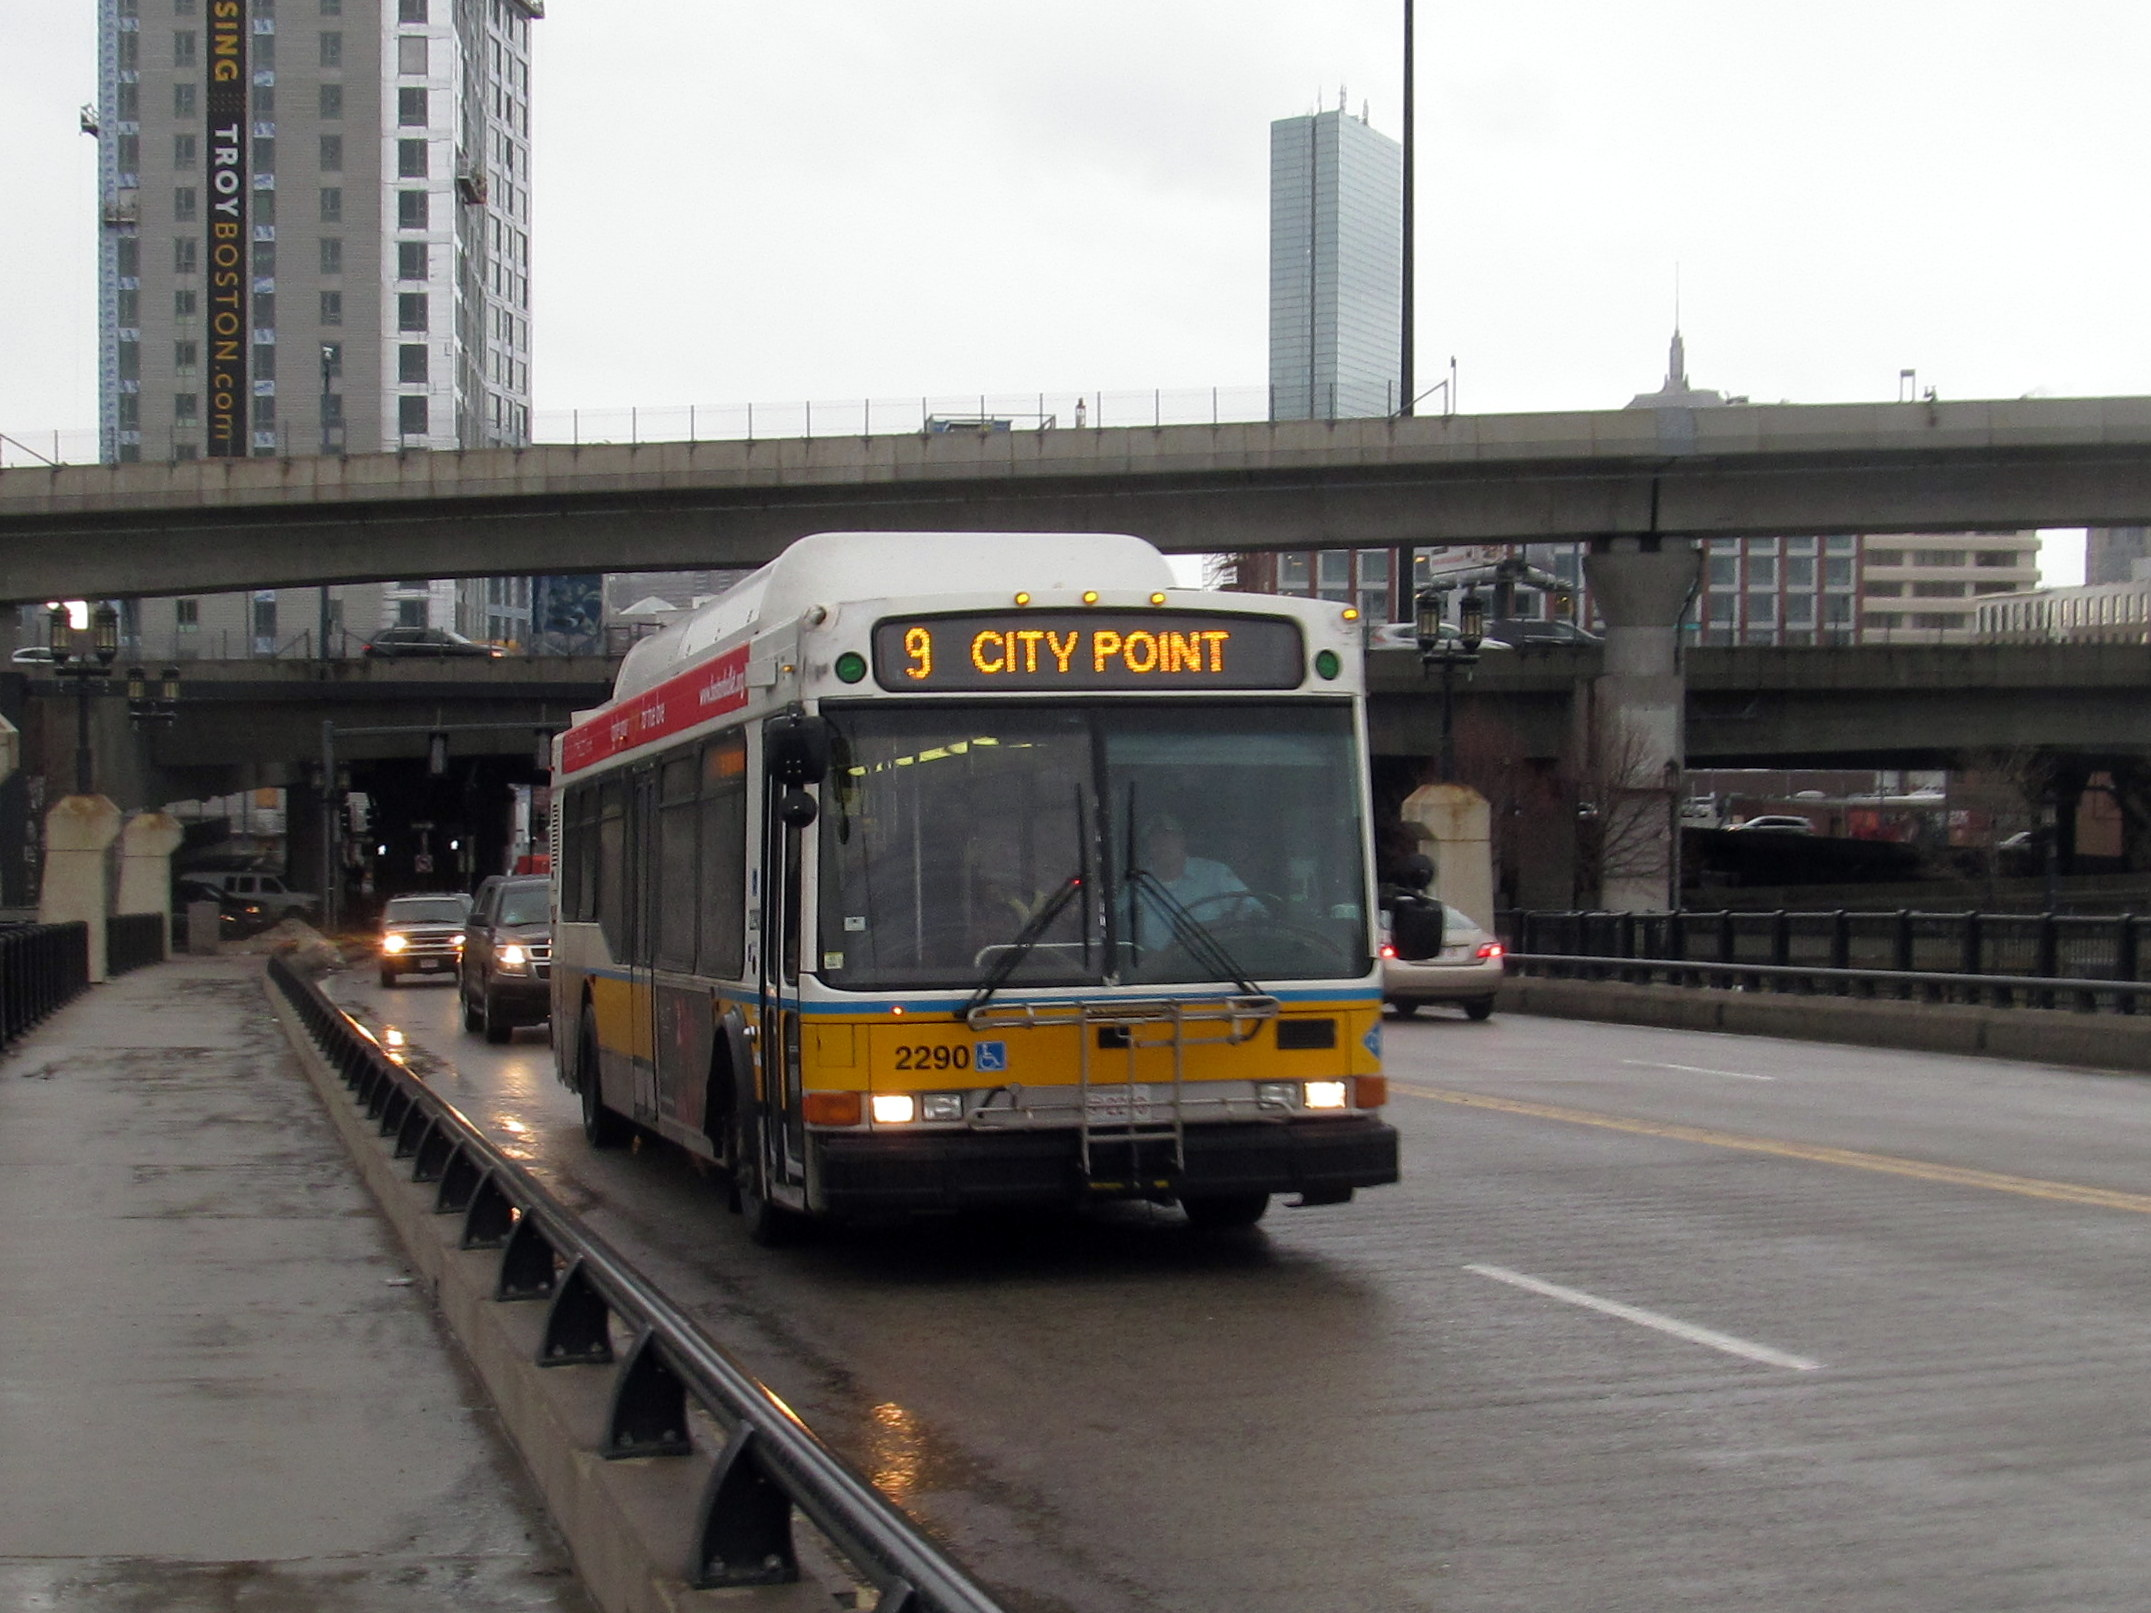 file:mbta route 9 bus on west broadway bridge, march 2015